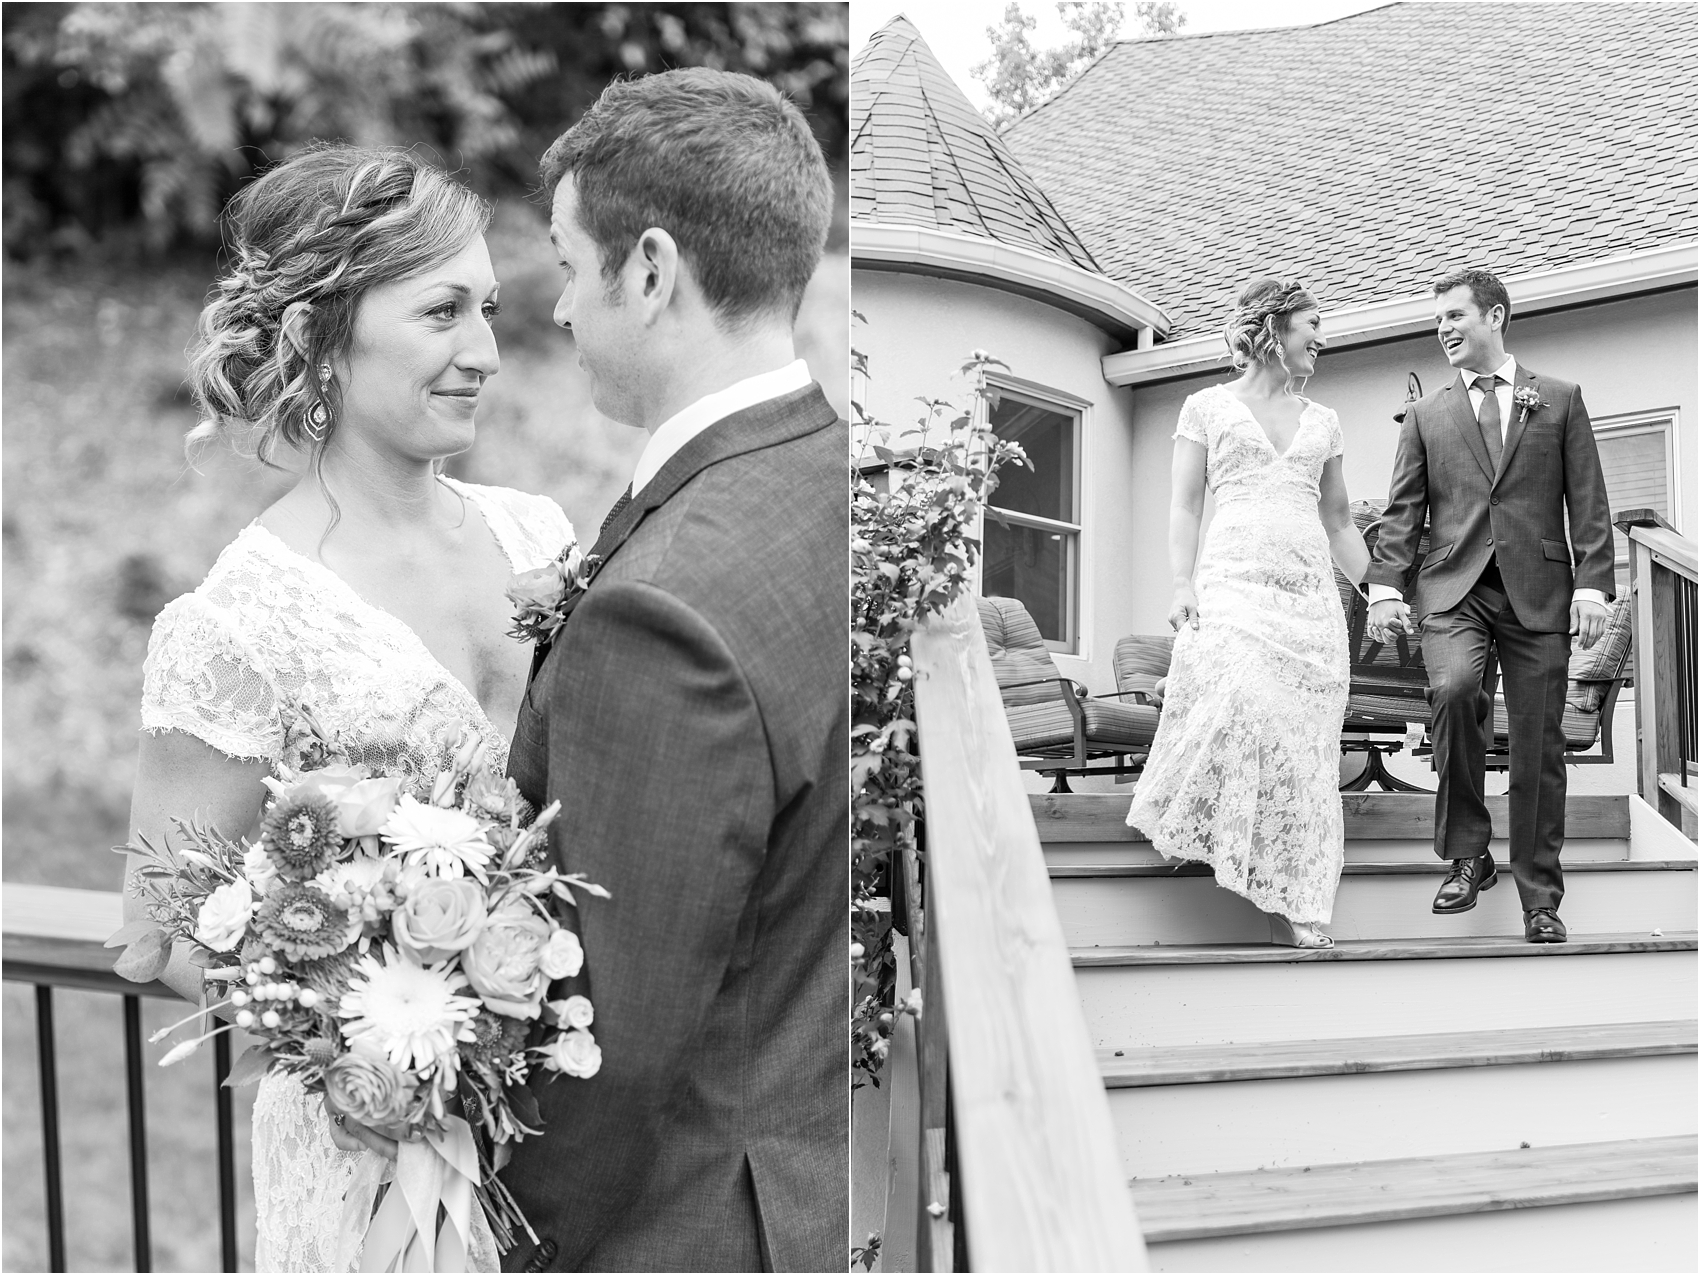 romantic-intimate-backyard-wedding-photos-at-private-estate-in-ann-arbor-mi-by-courtney-carolyn-photography_0036.jpg